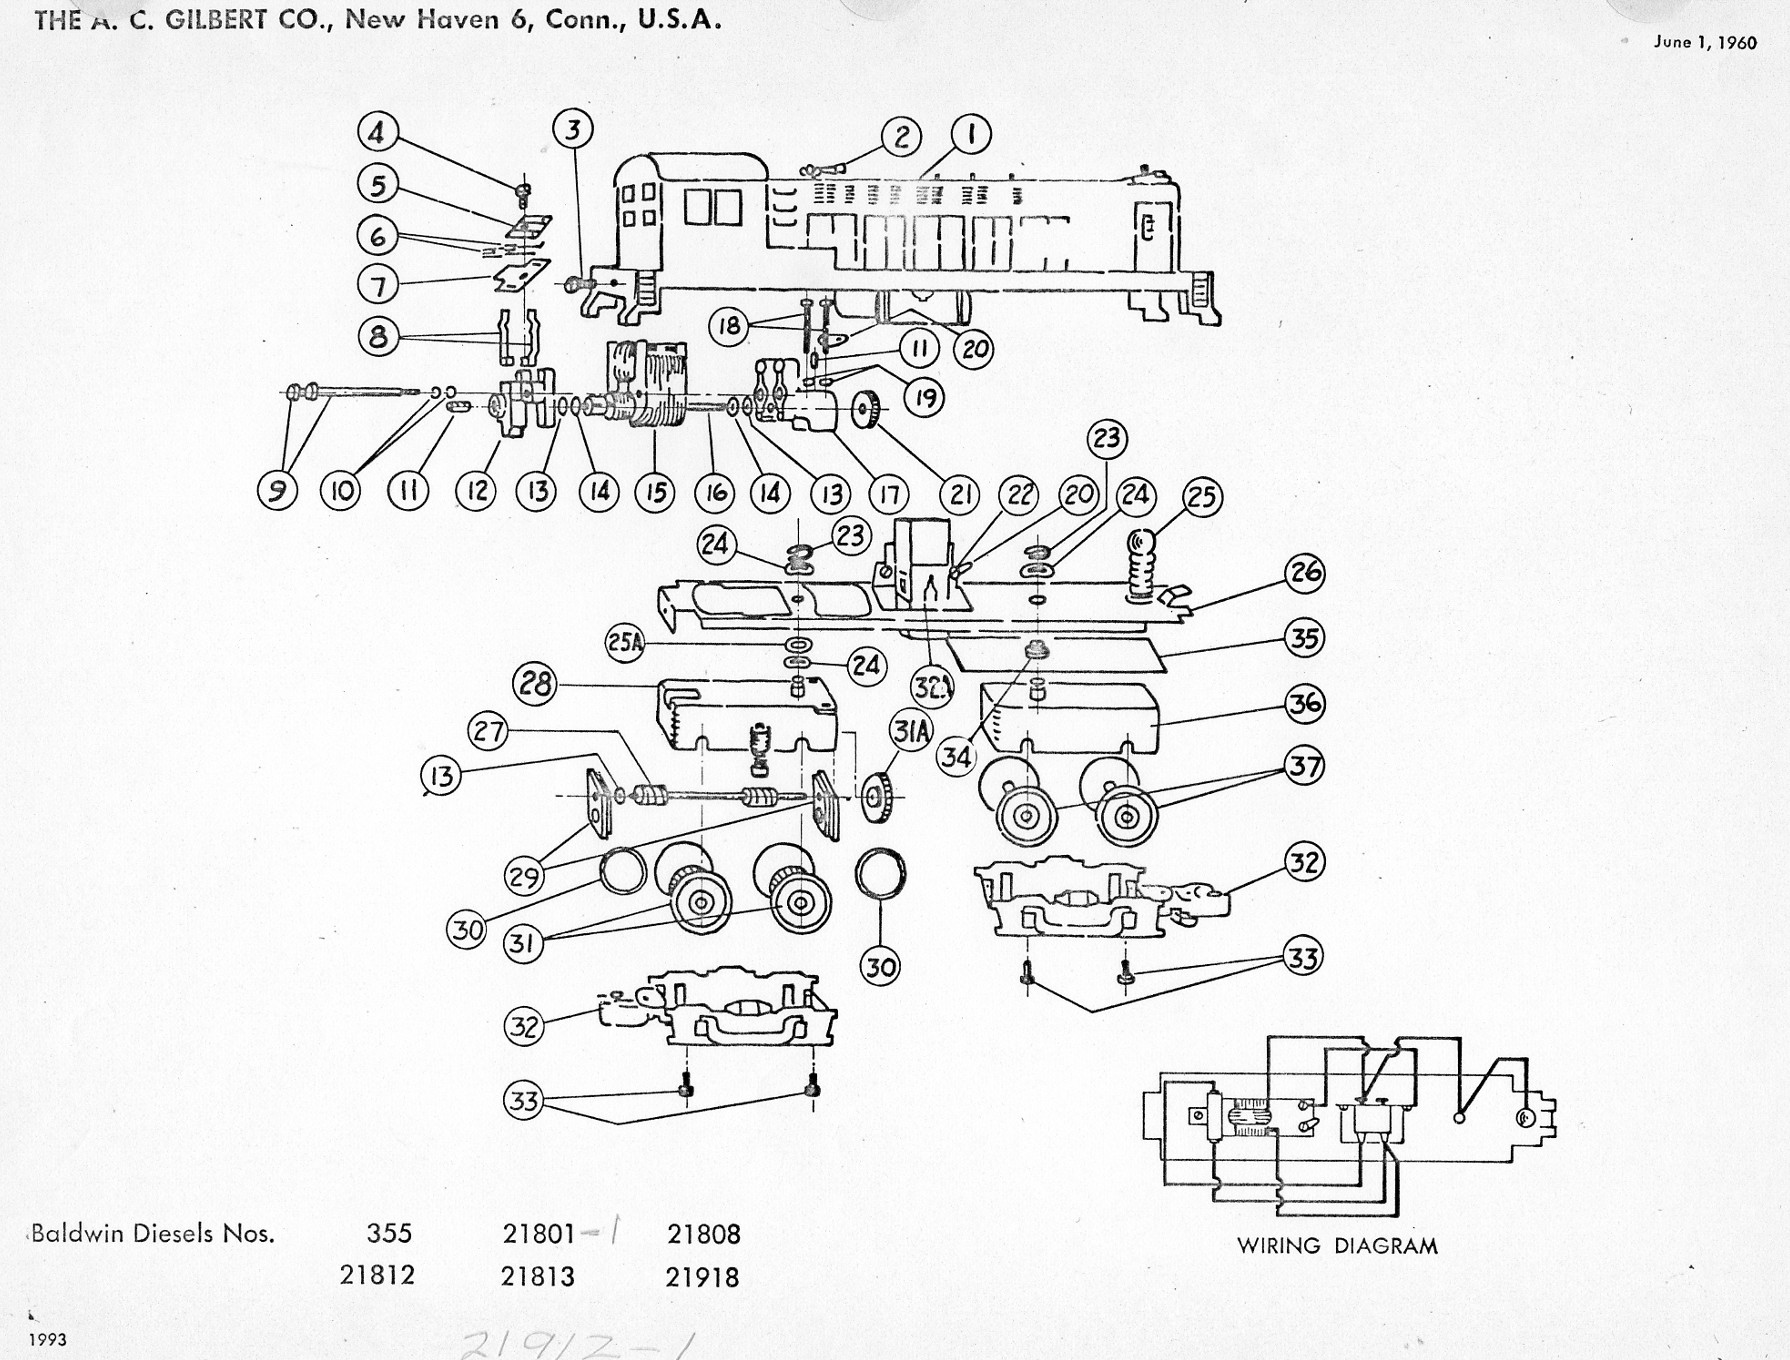 American Flyer Locomotive Baldwin Diesels Parts List